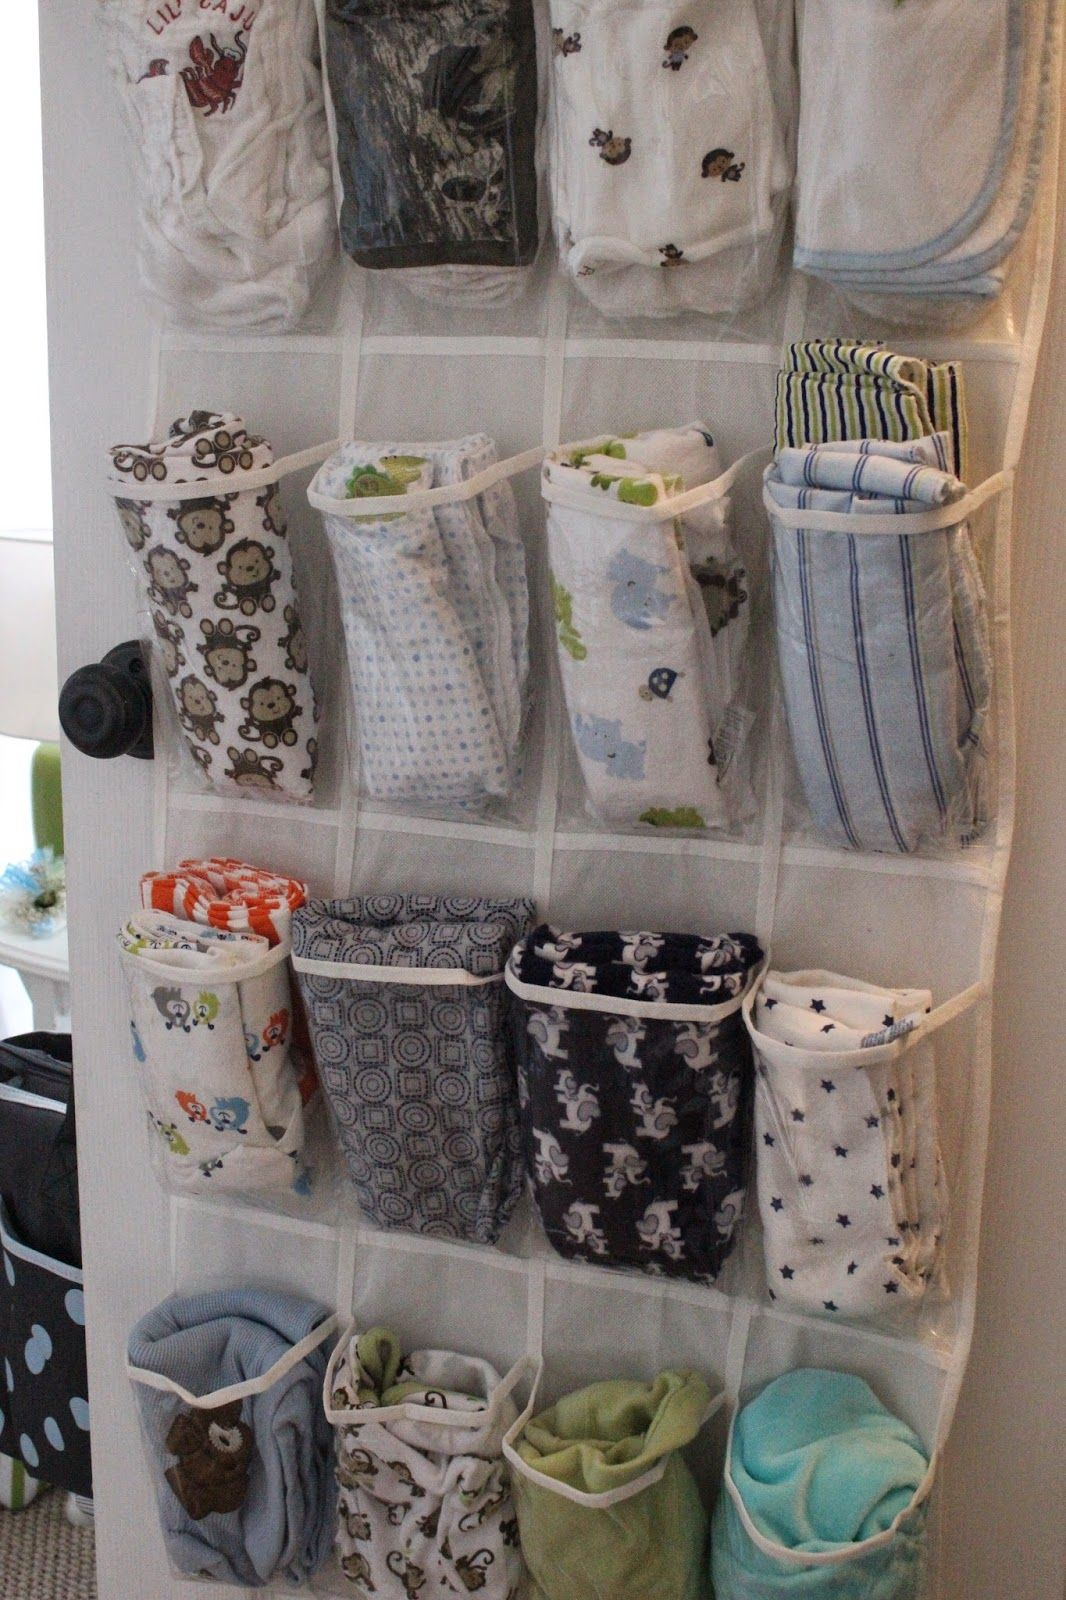 Baby Blankets And Or Burp Cloths In A Shoe Organizer On The Back Of Door Why Did I Not Think That